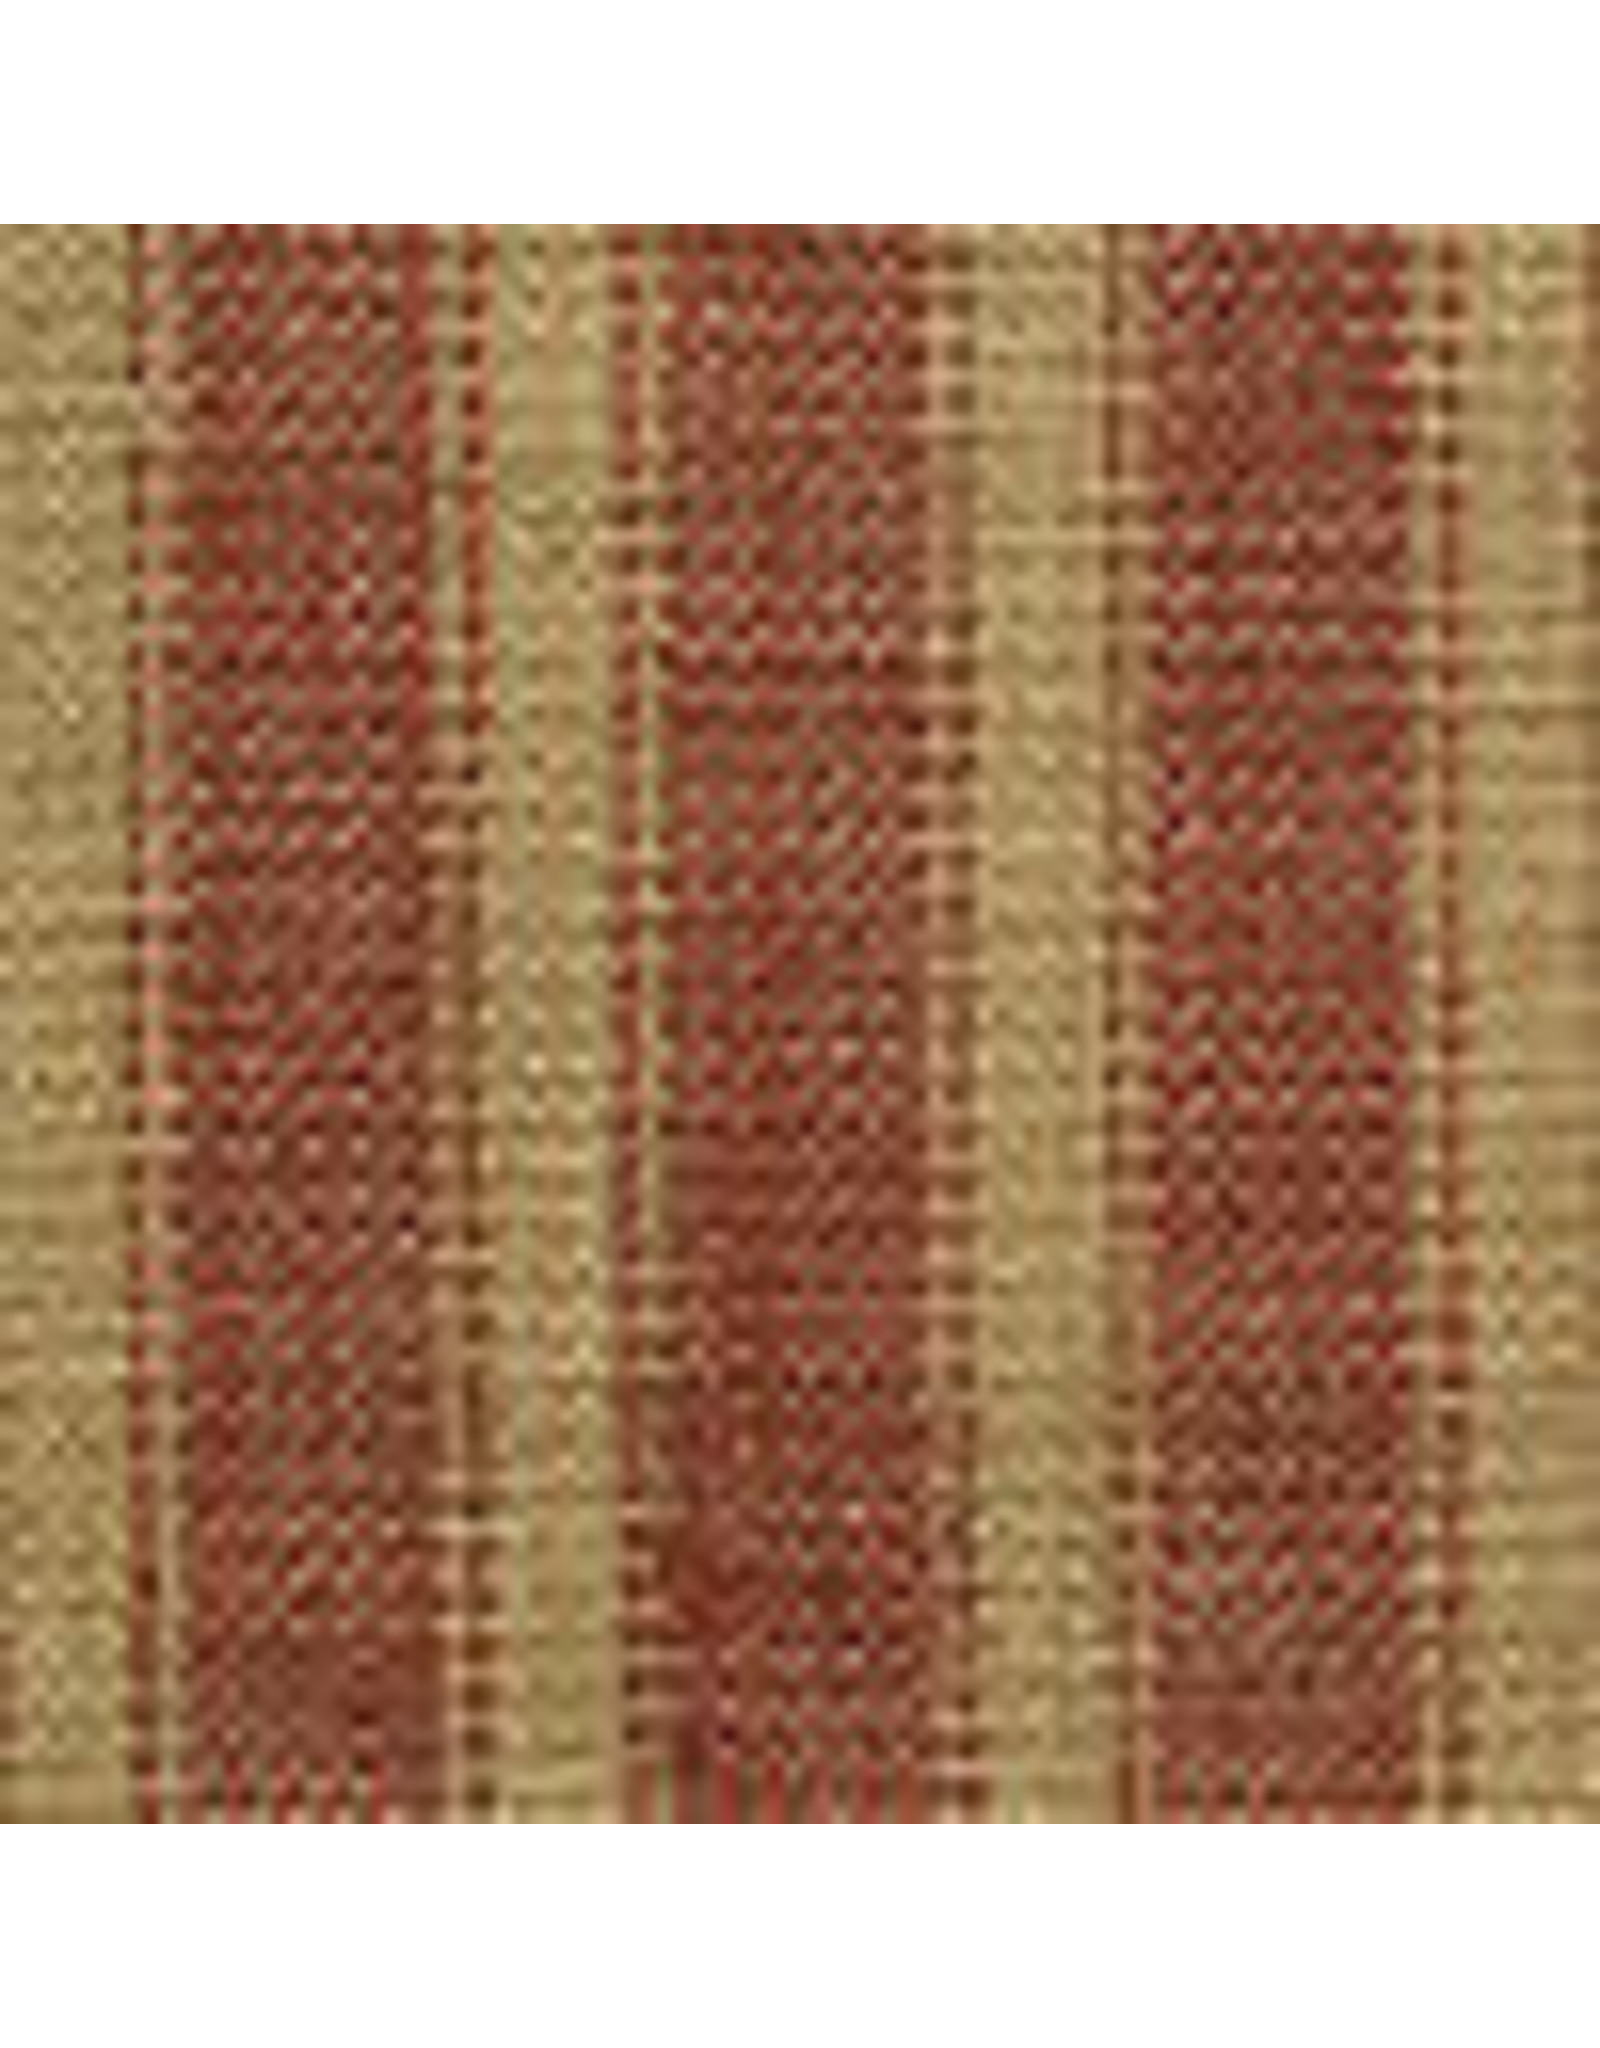 Yd. Red and Tan Reverse Ticking Fabric #37s